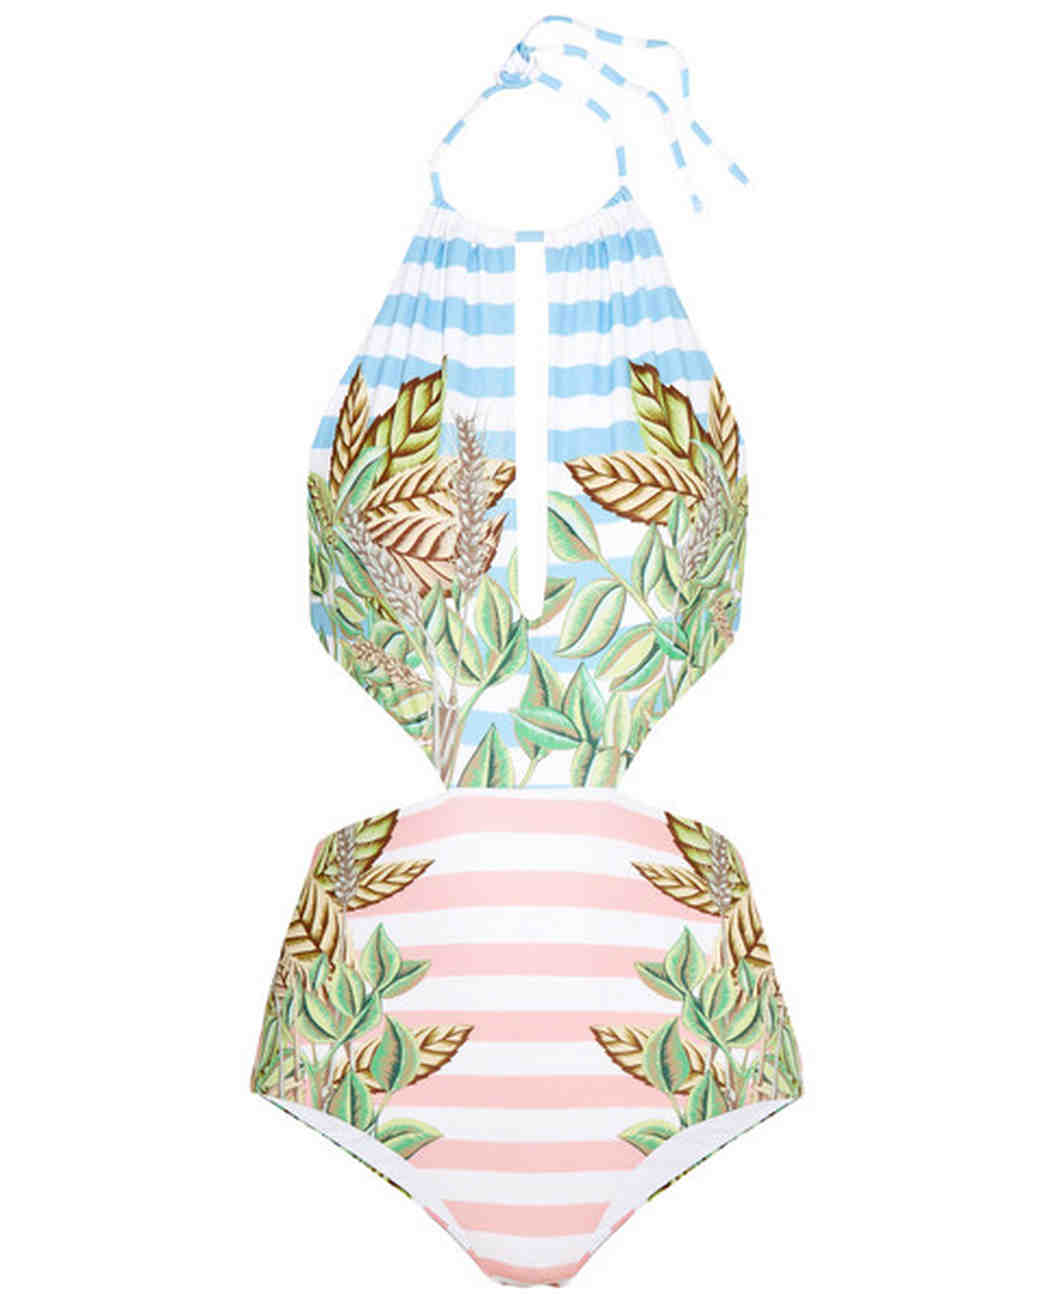 Pink and Blue Striped Halter Swimsuit with Tropical Print